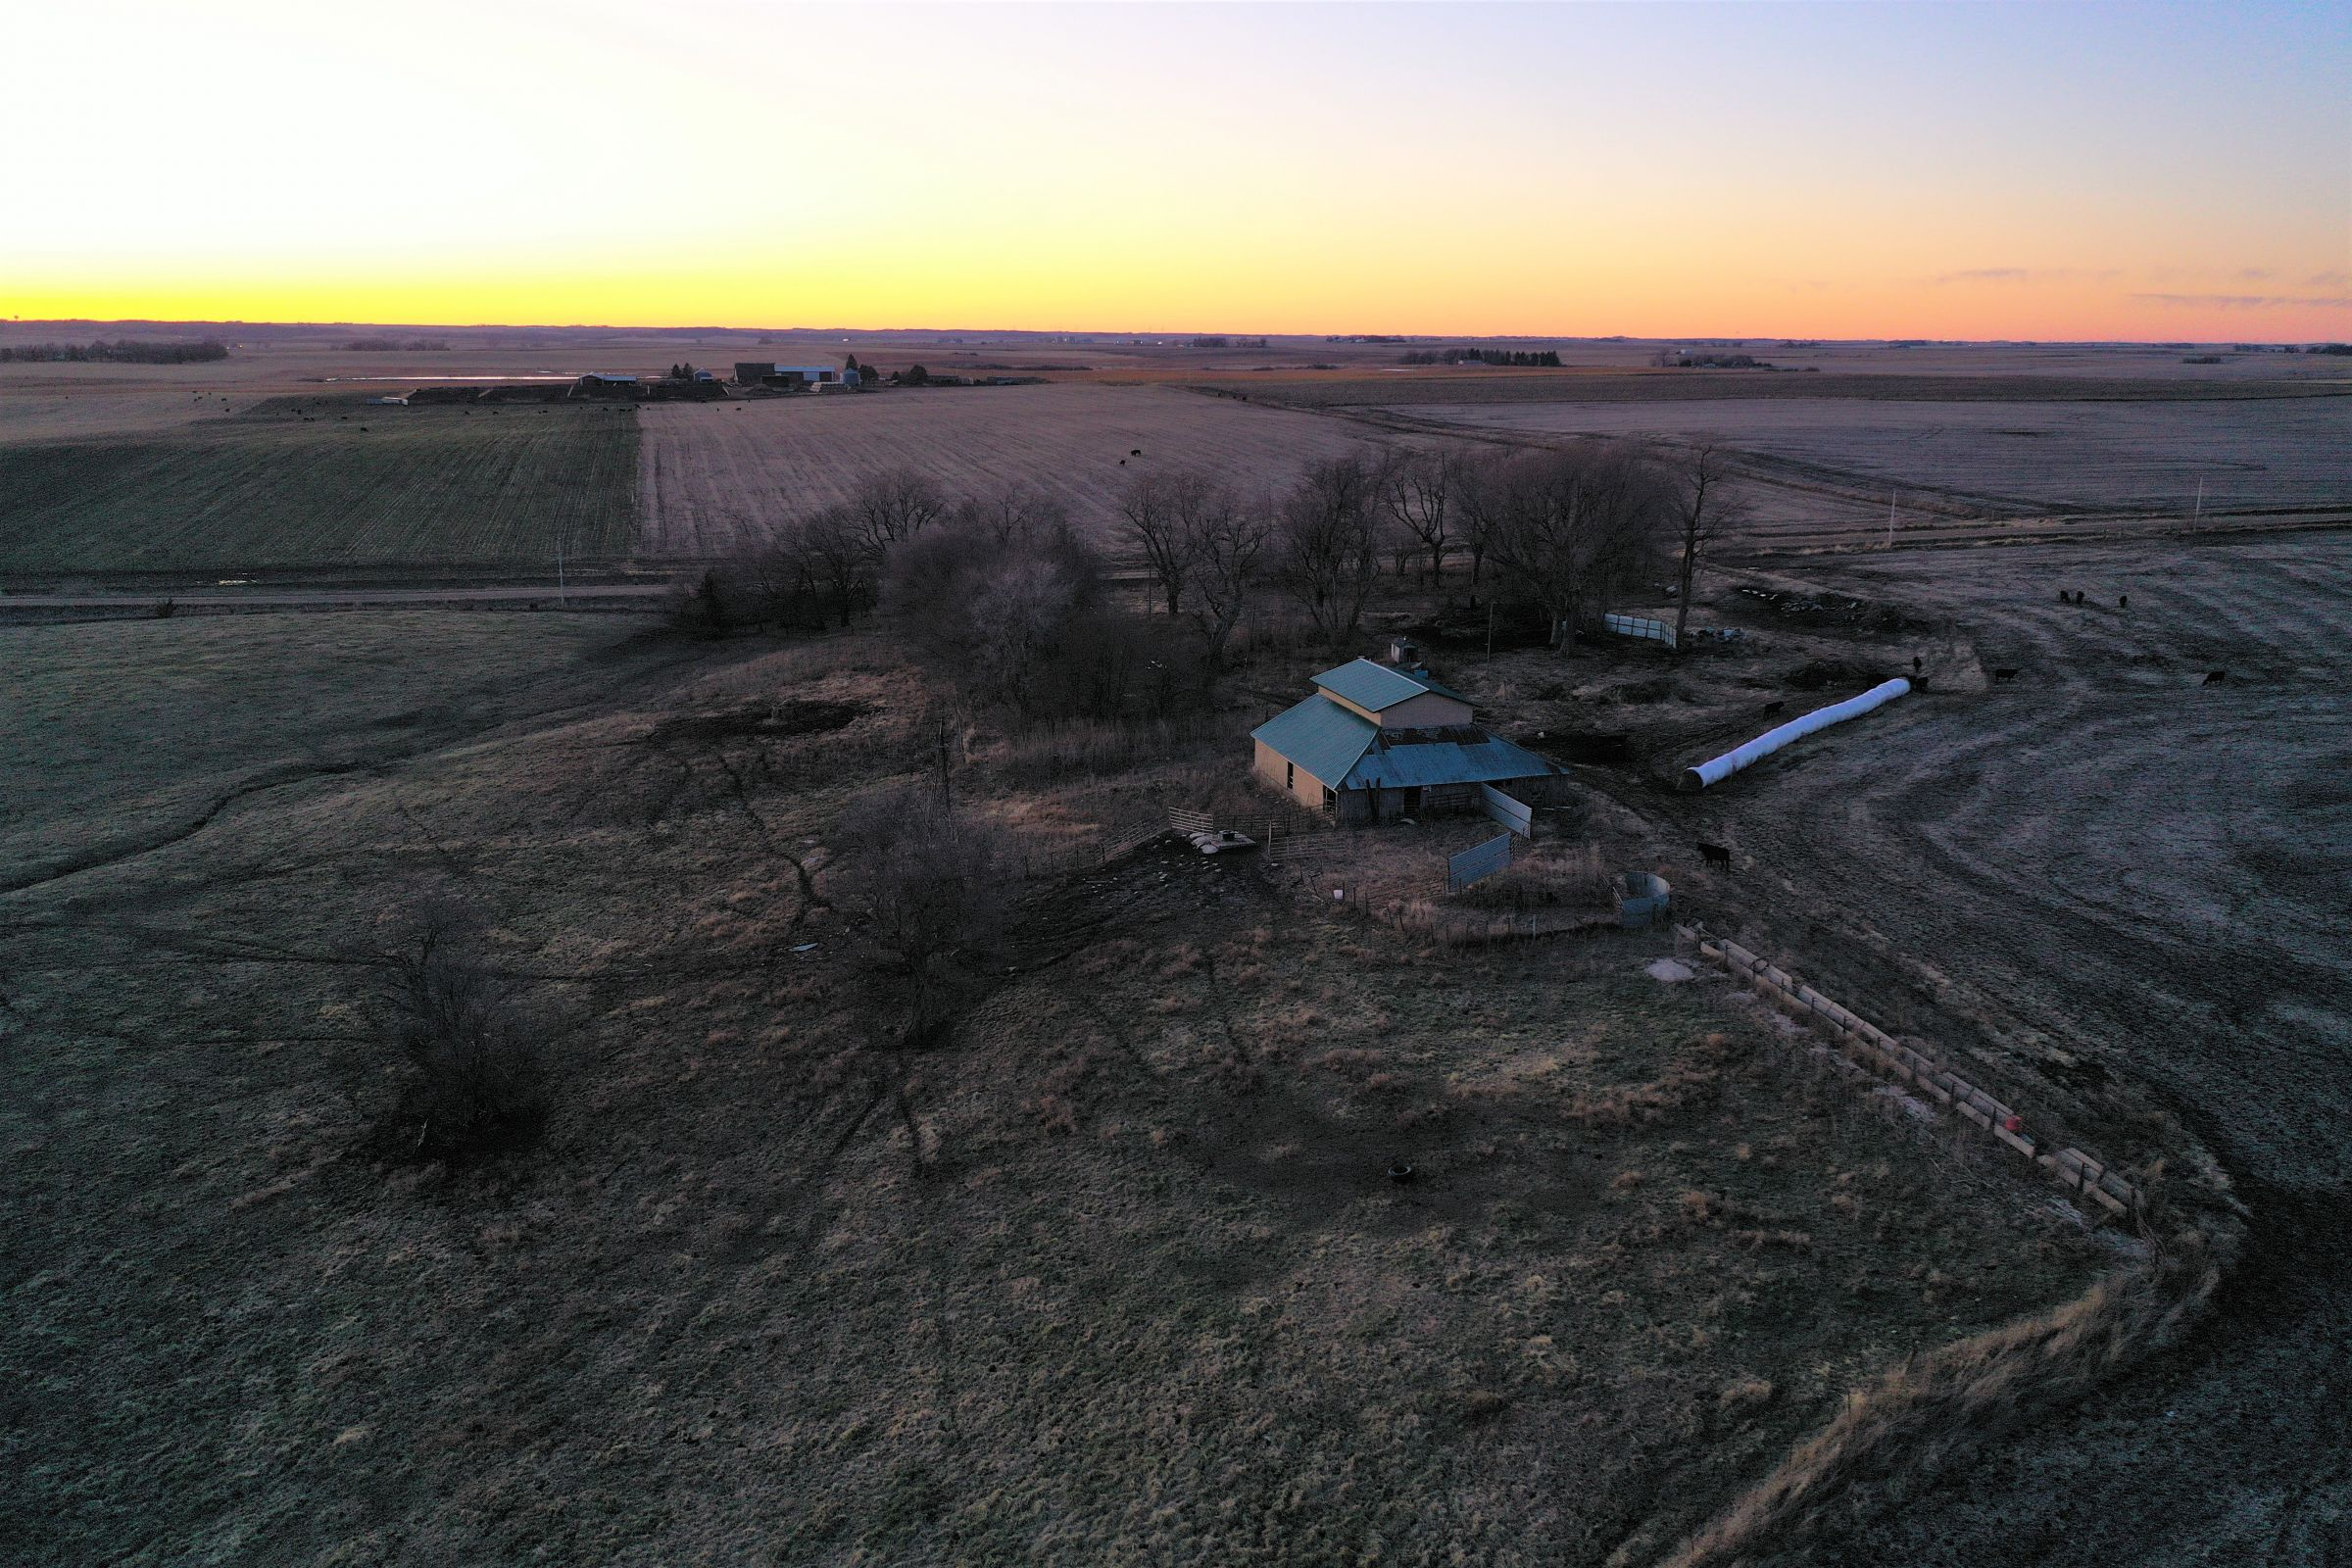 Sunset - Barn 2